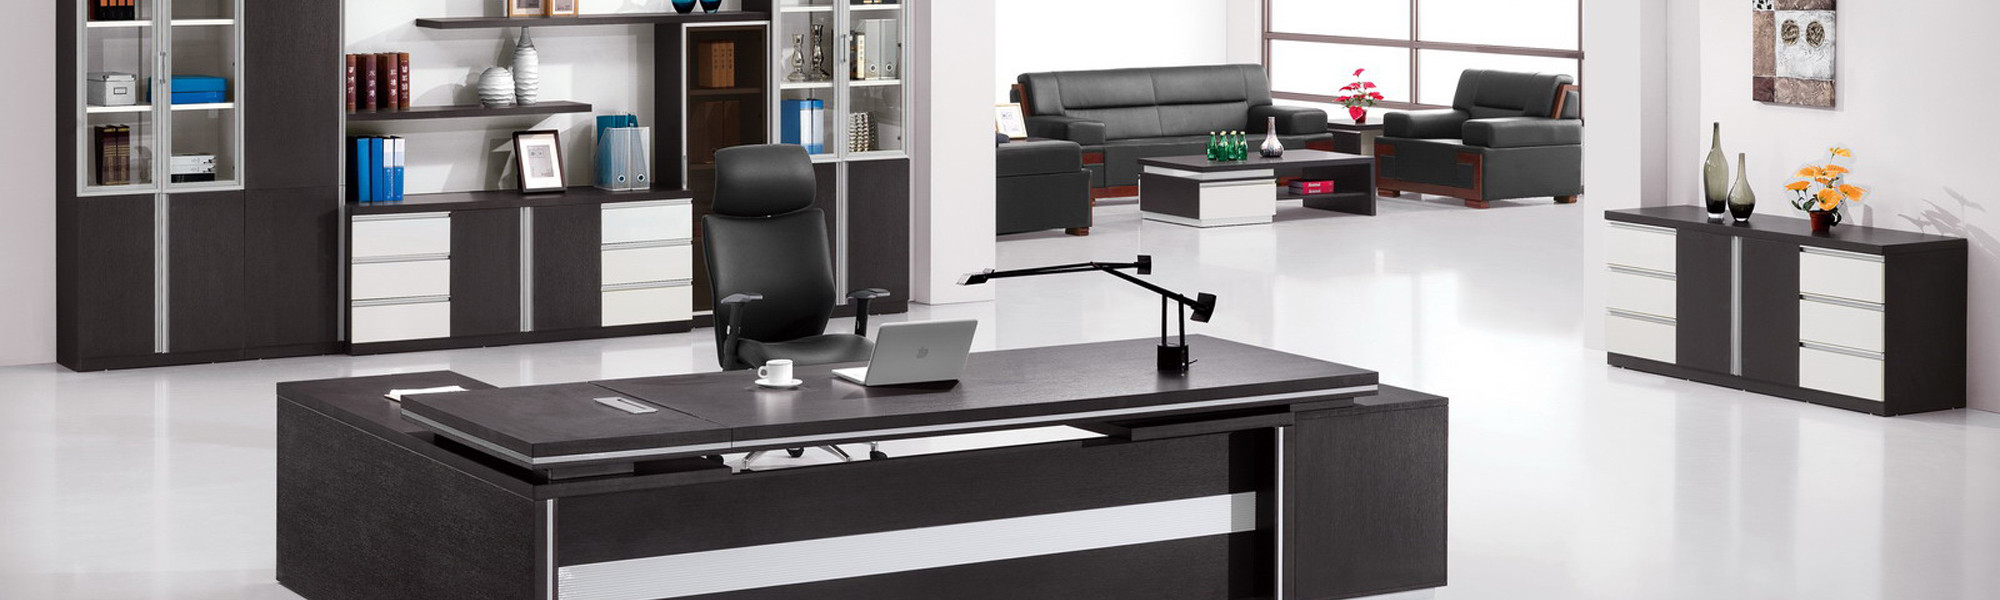 Office-Desk-in-Lagos-Abuja-Port-harcourt-Nigeria-Hitech-Design-Furniture-Limited